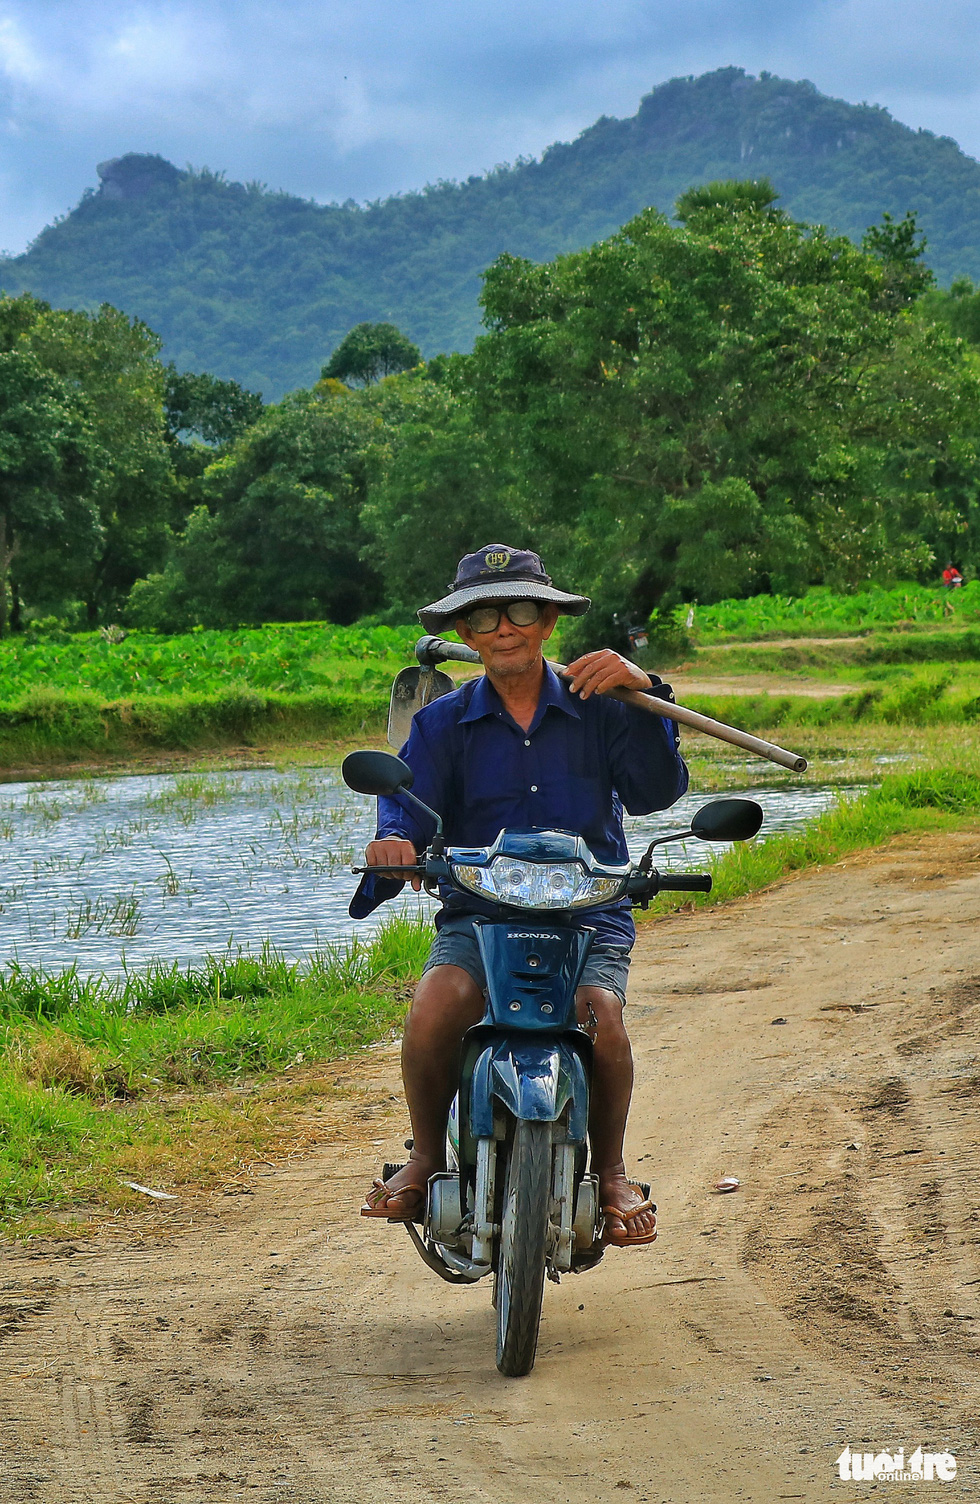 An old man rides a motorbike while shouldering a hoe on a trail amid rice paddies in Tri Ton District, An Giang Province, southern Vietnam. Photo: Nguyet Nhi / Tuoi Tre